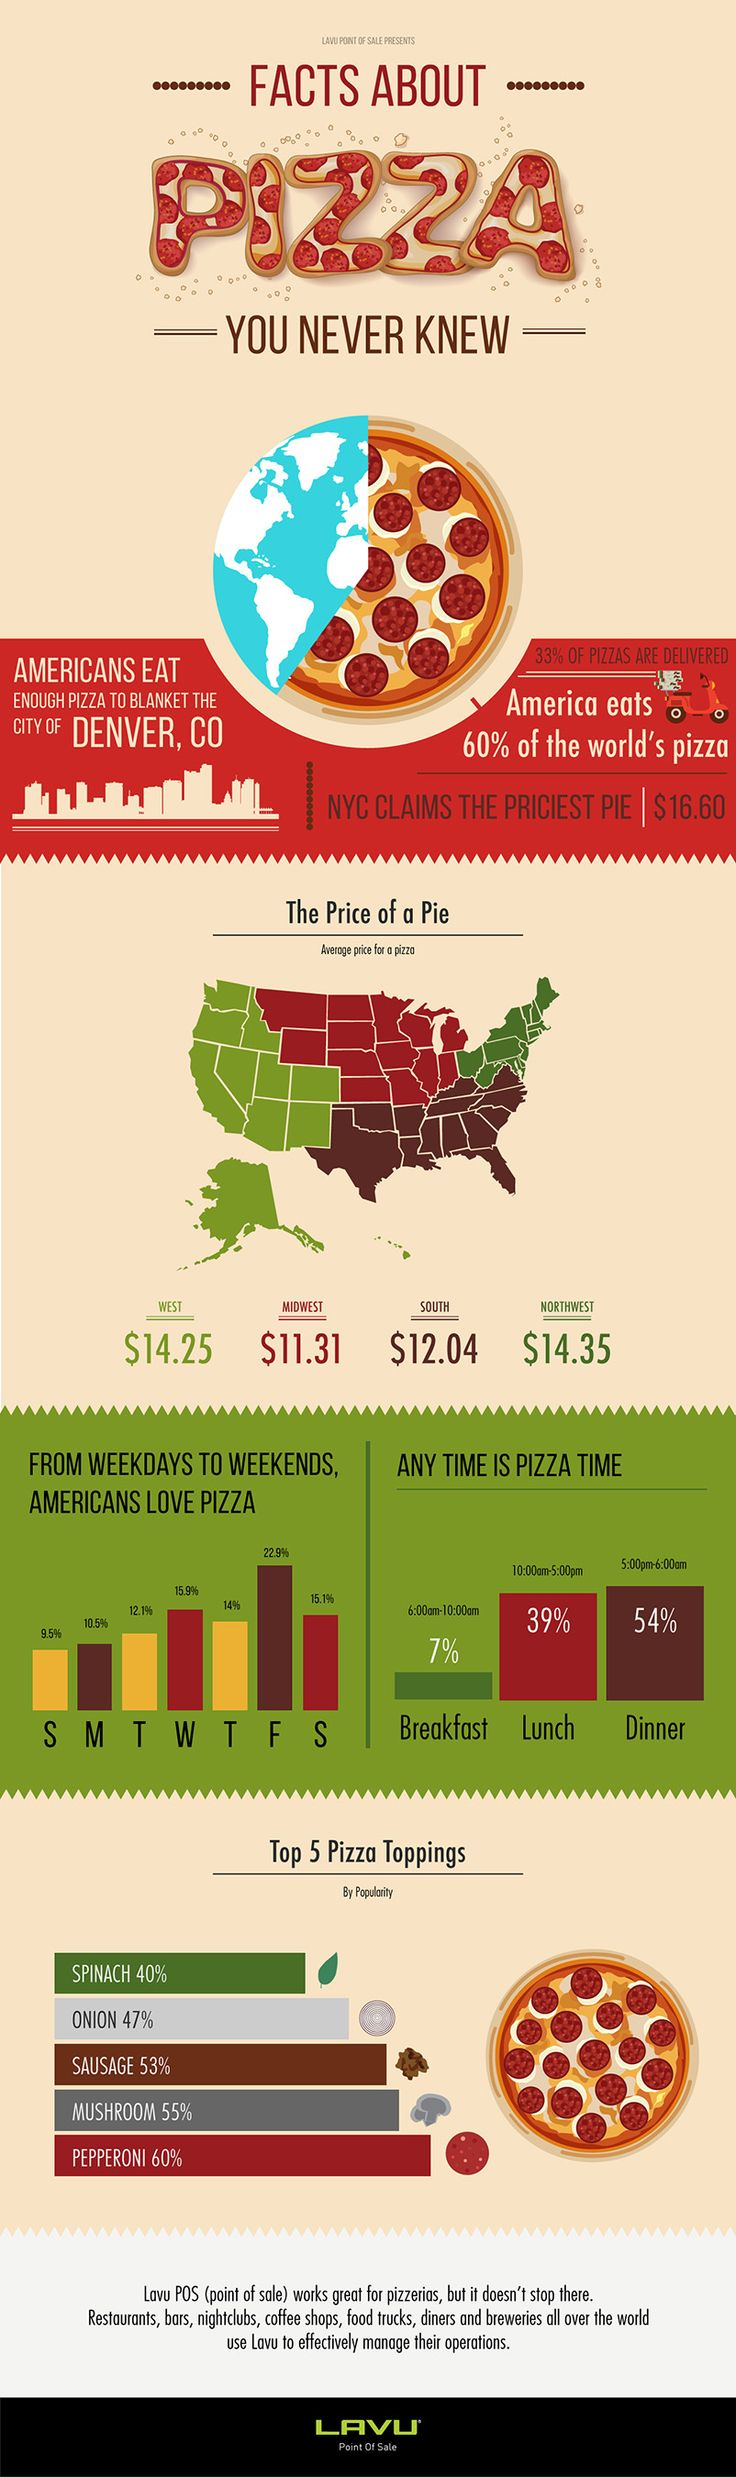 This interesting infographic contains some facts about pizza you need to know.